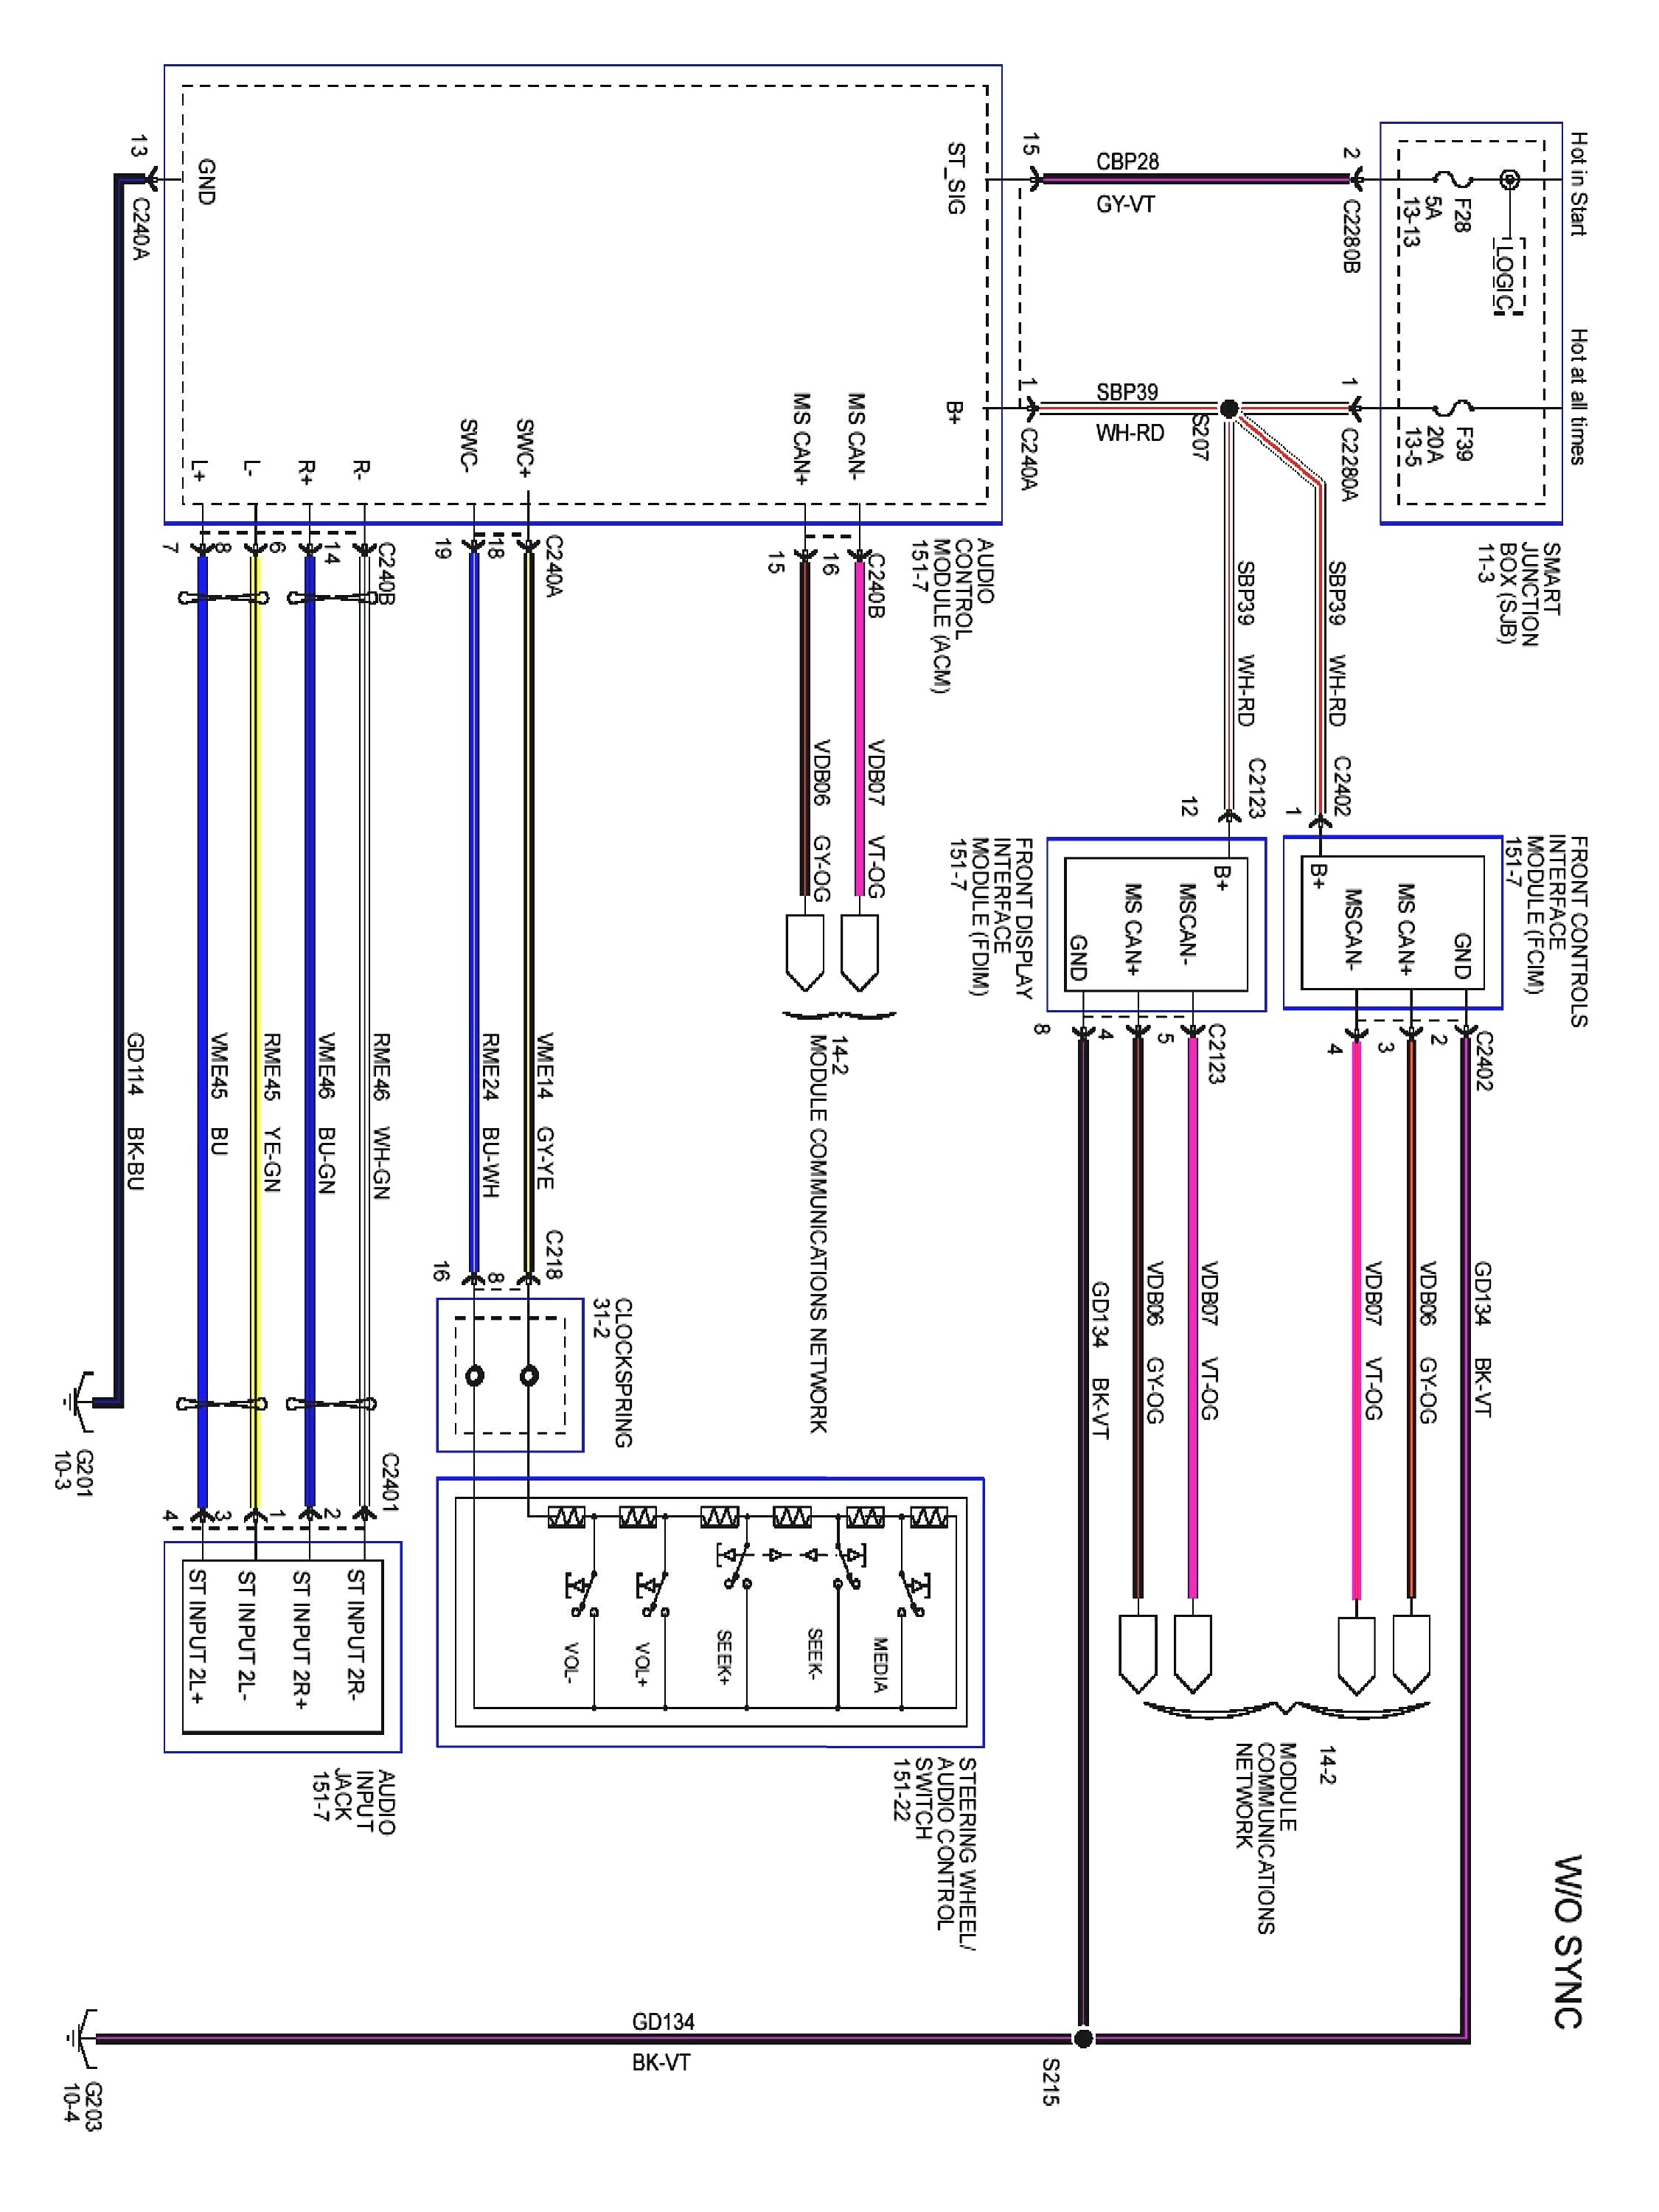 2012 ford Focus Wiring Diagram ford Focus Mk2 Wiring Diagram New and Roc Grp Of 2012 ford Focus Wiring Diagram